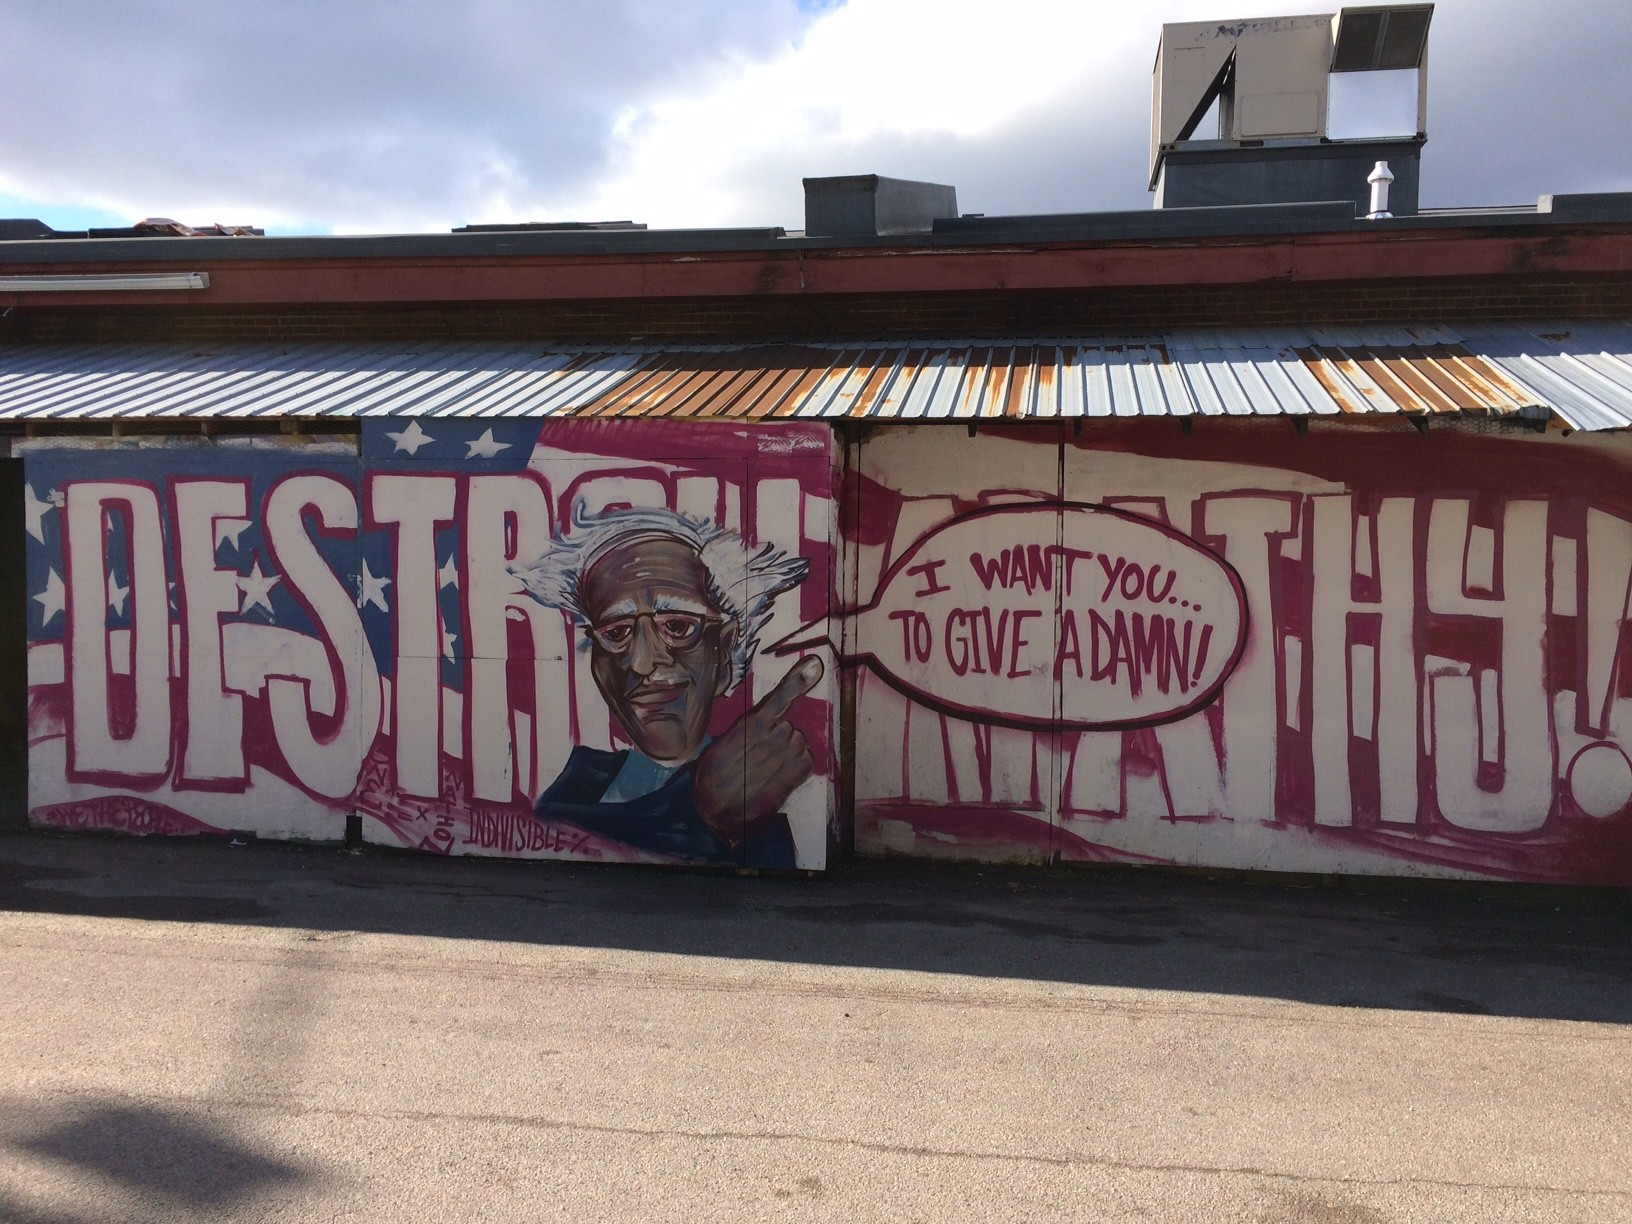 Click to enlarge anthill collectives bernie sanders mural behind artsriot courtesy of anthill collective